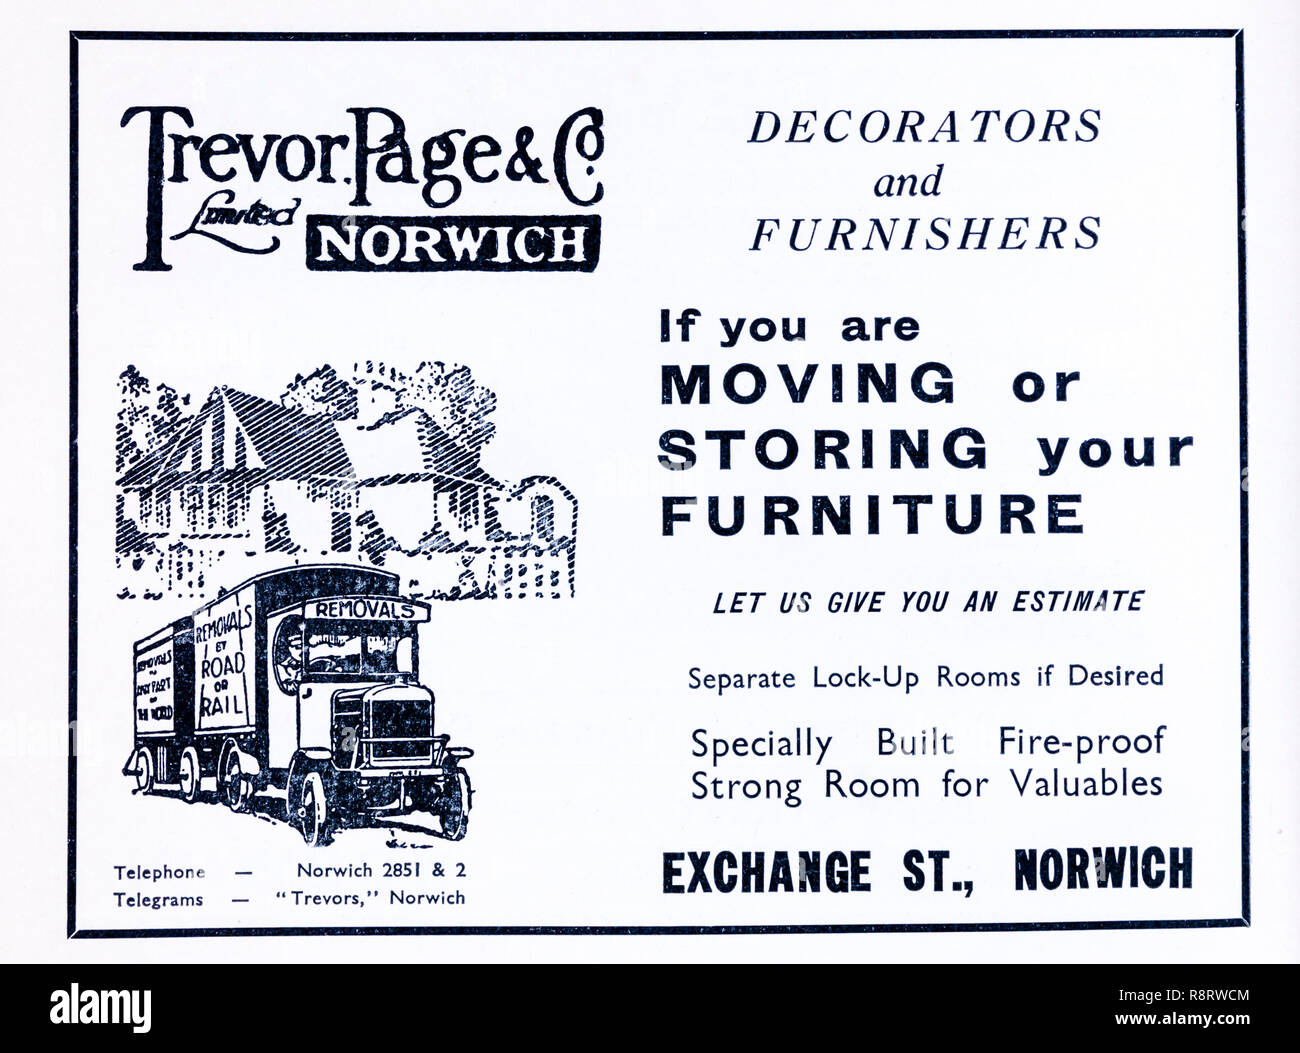 A 1930s advertisement for a furniture removal company, Trevor Page & Co of Norwich. Stock Photo